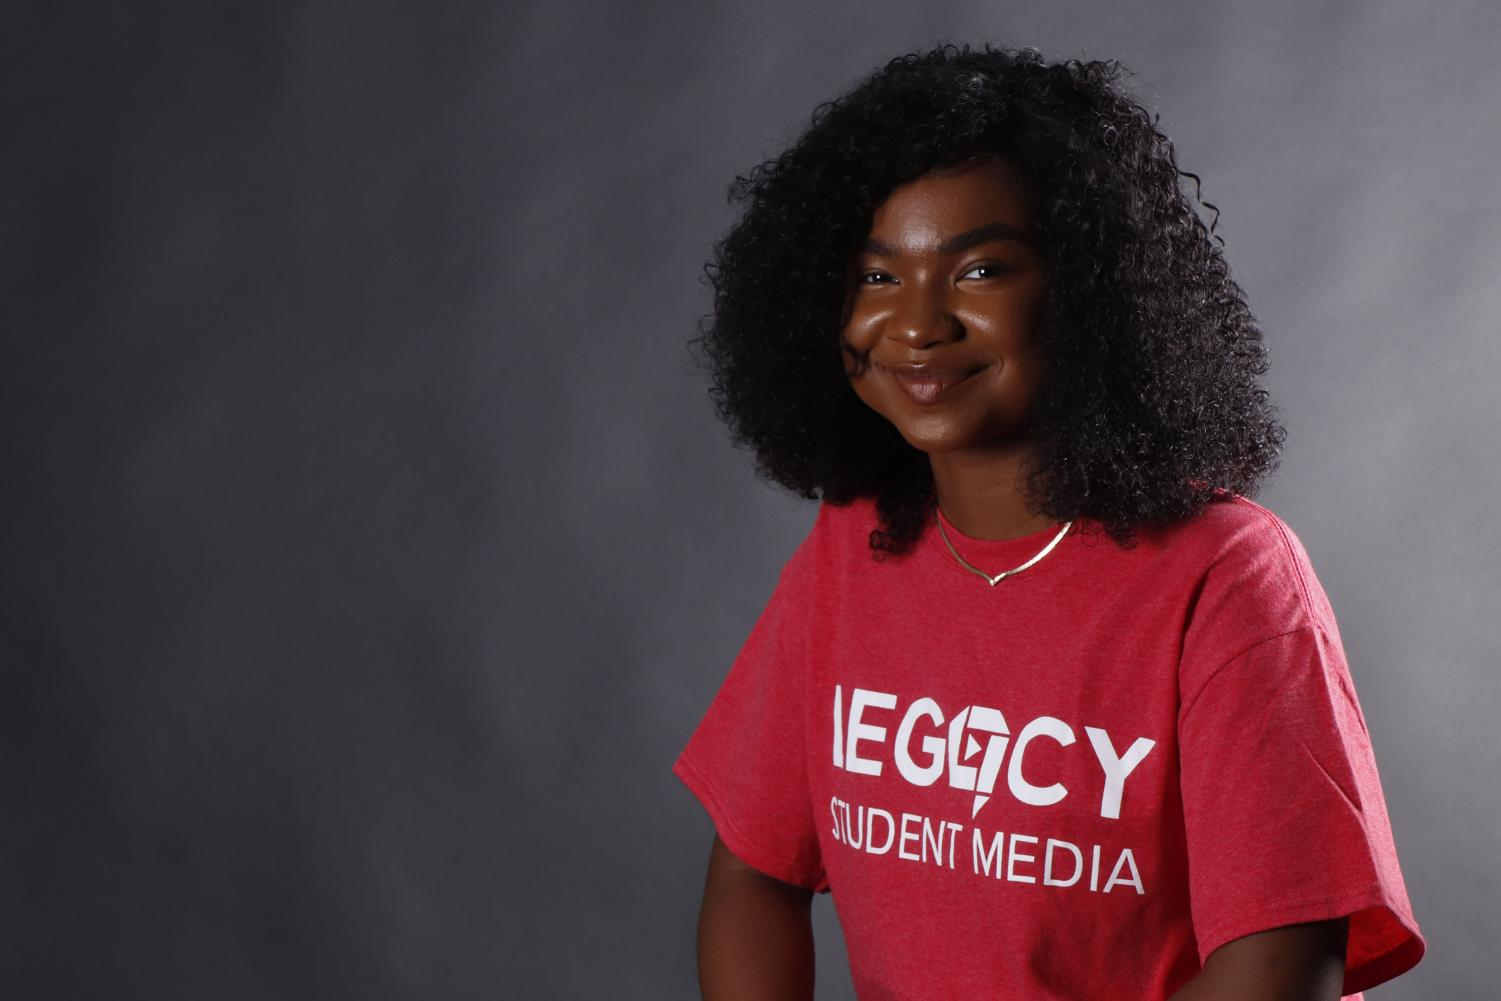 Keonna writes about her transition into Legacy Student Media